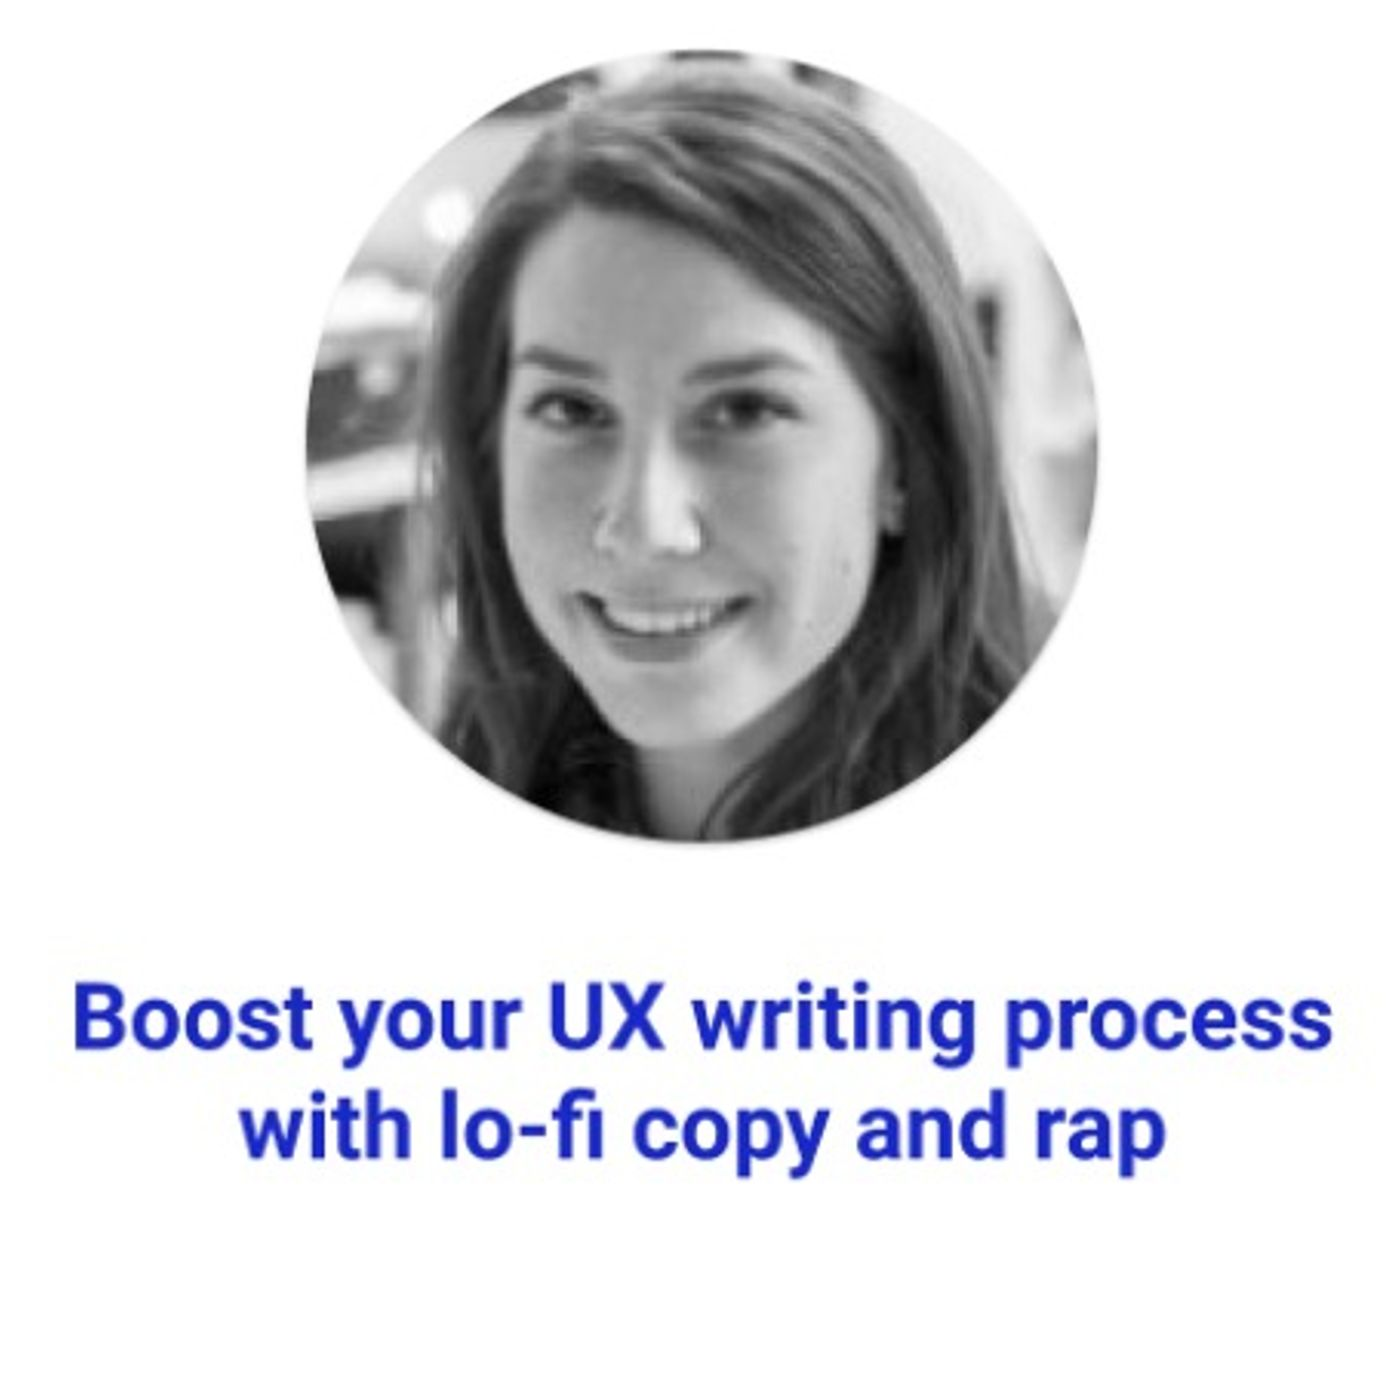 Boost your UX writing process with lo-fi copy and rap